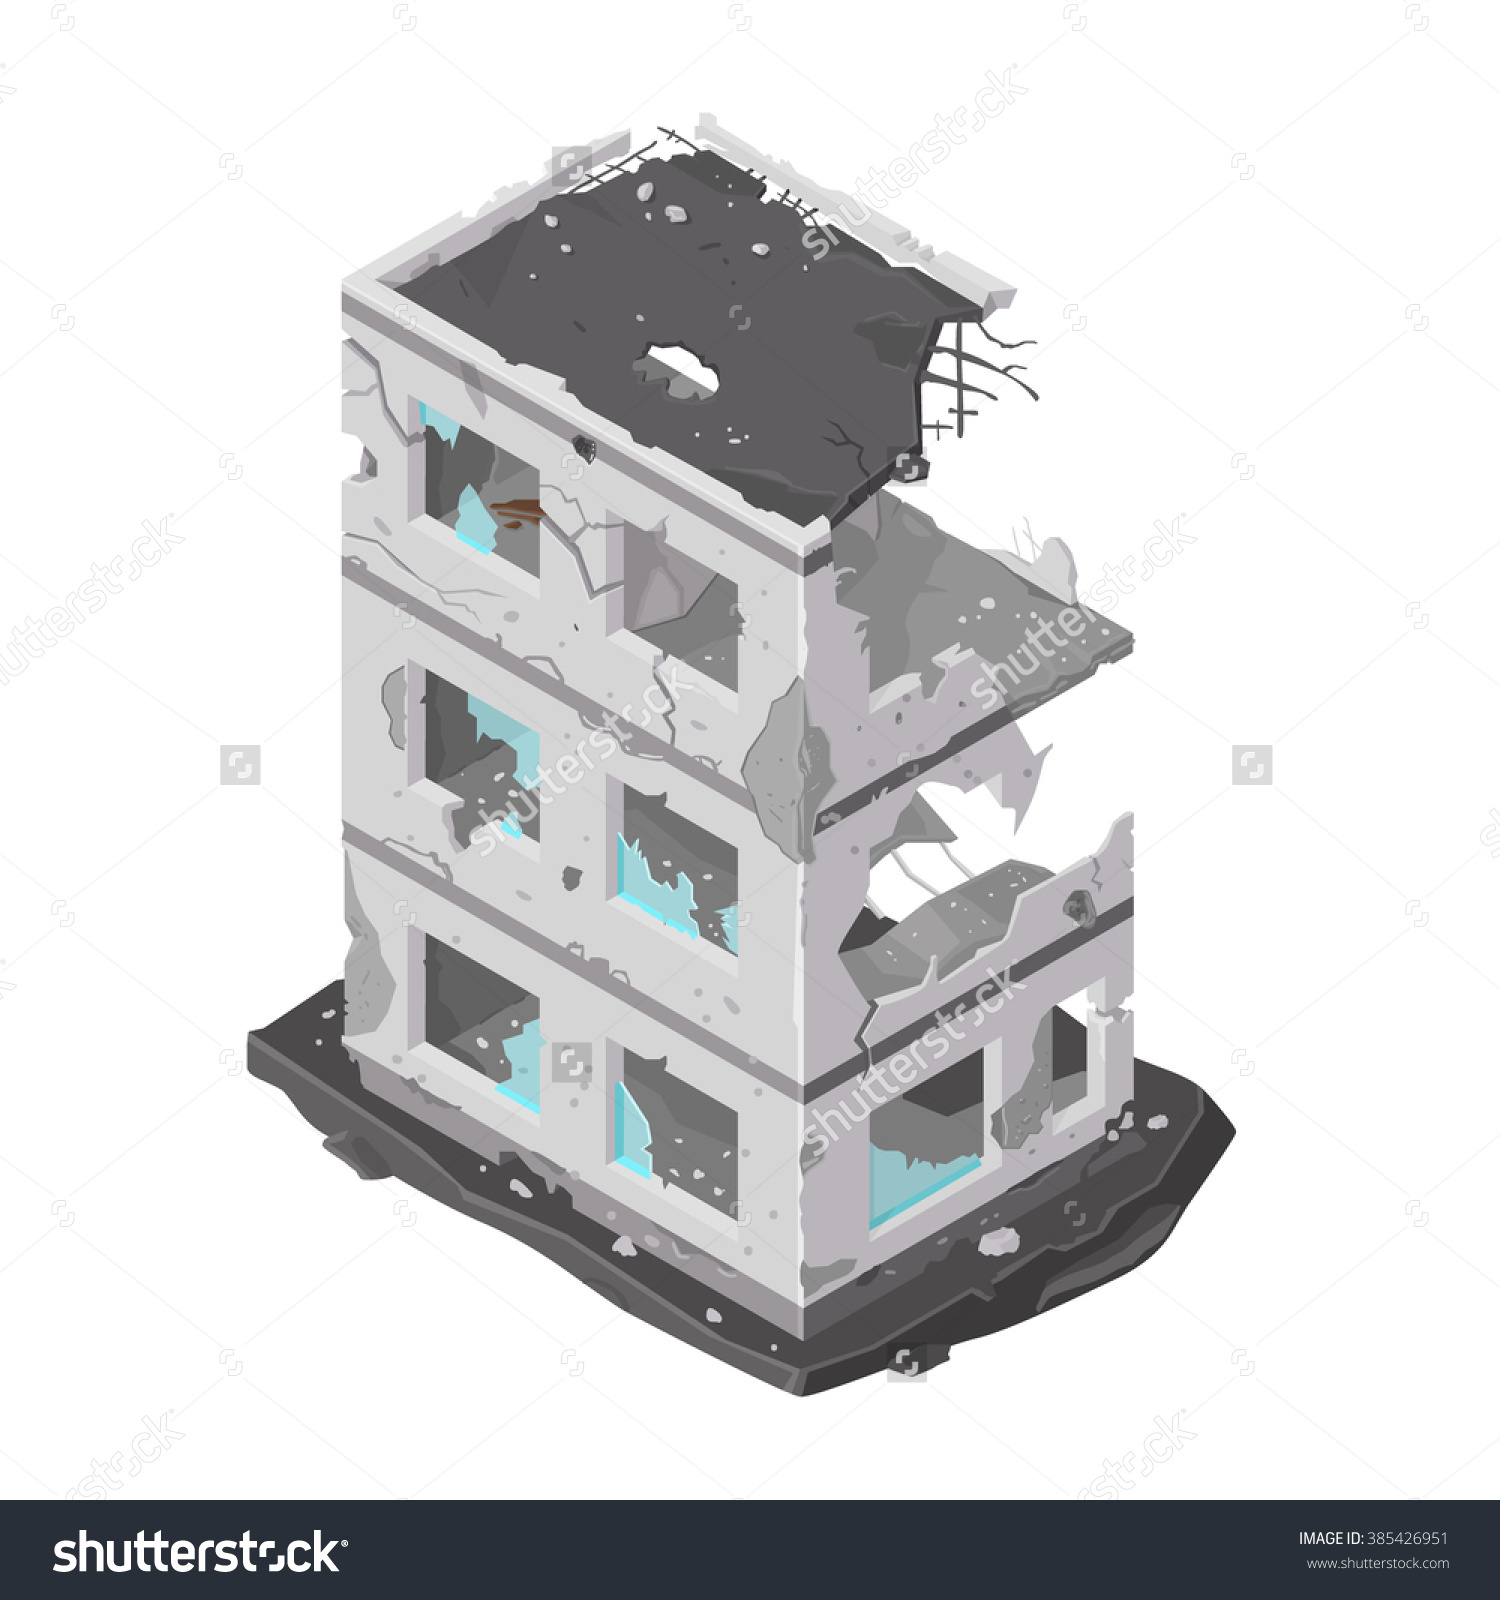 Vector Illustration Damaged Building Icon isometric Building Stock.